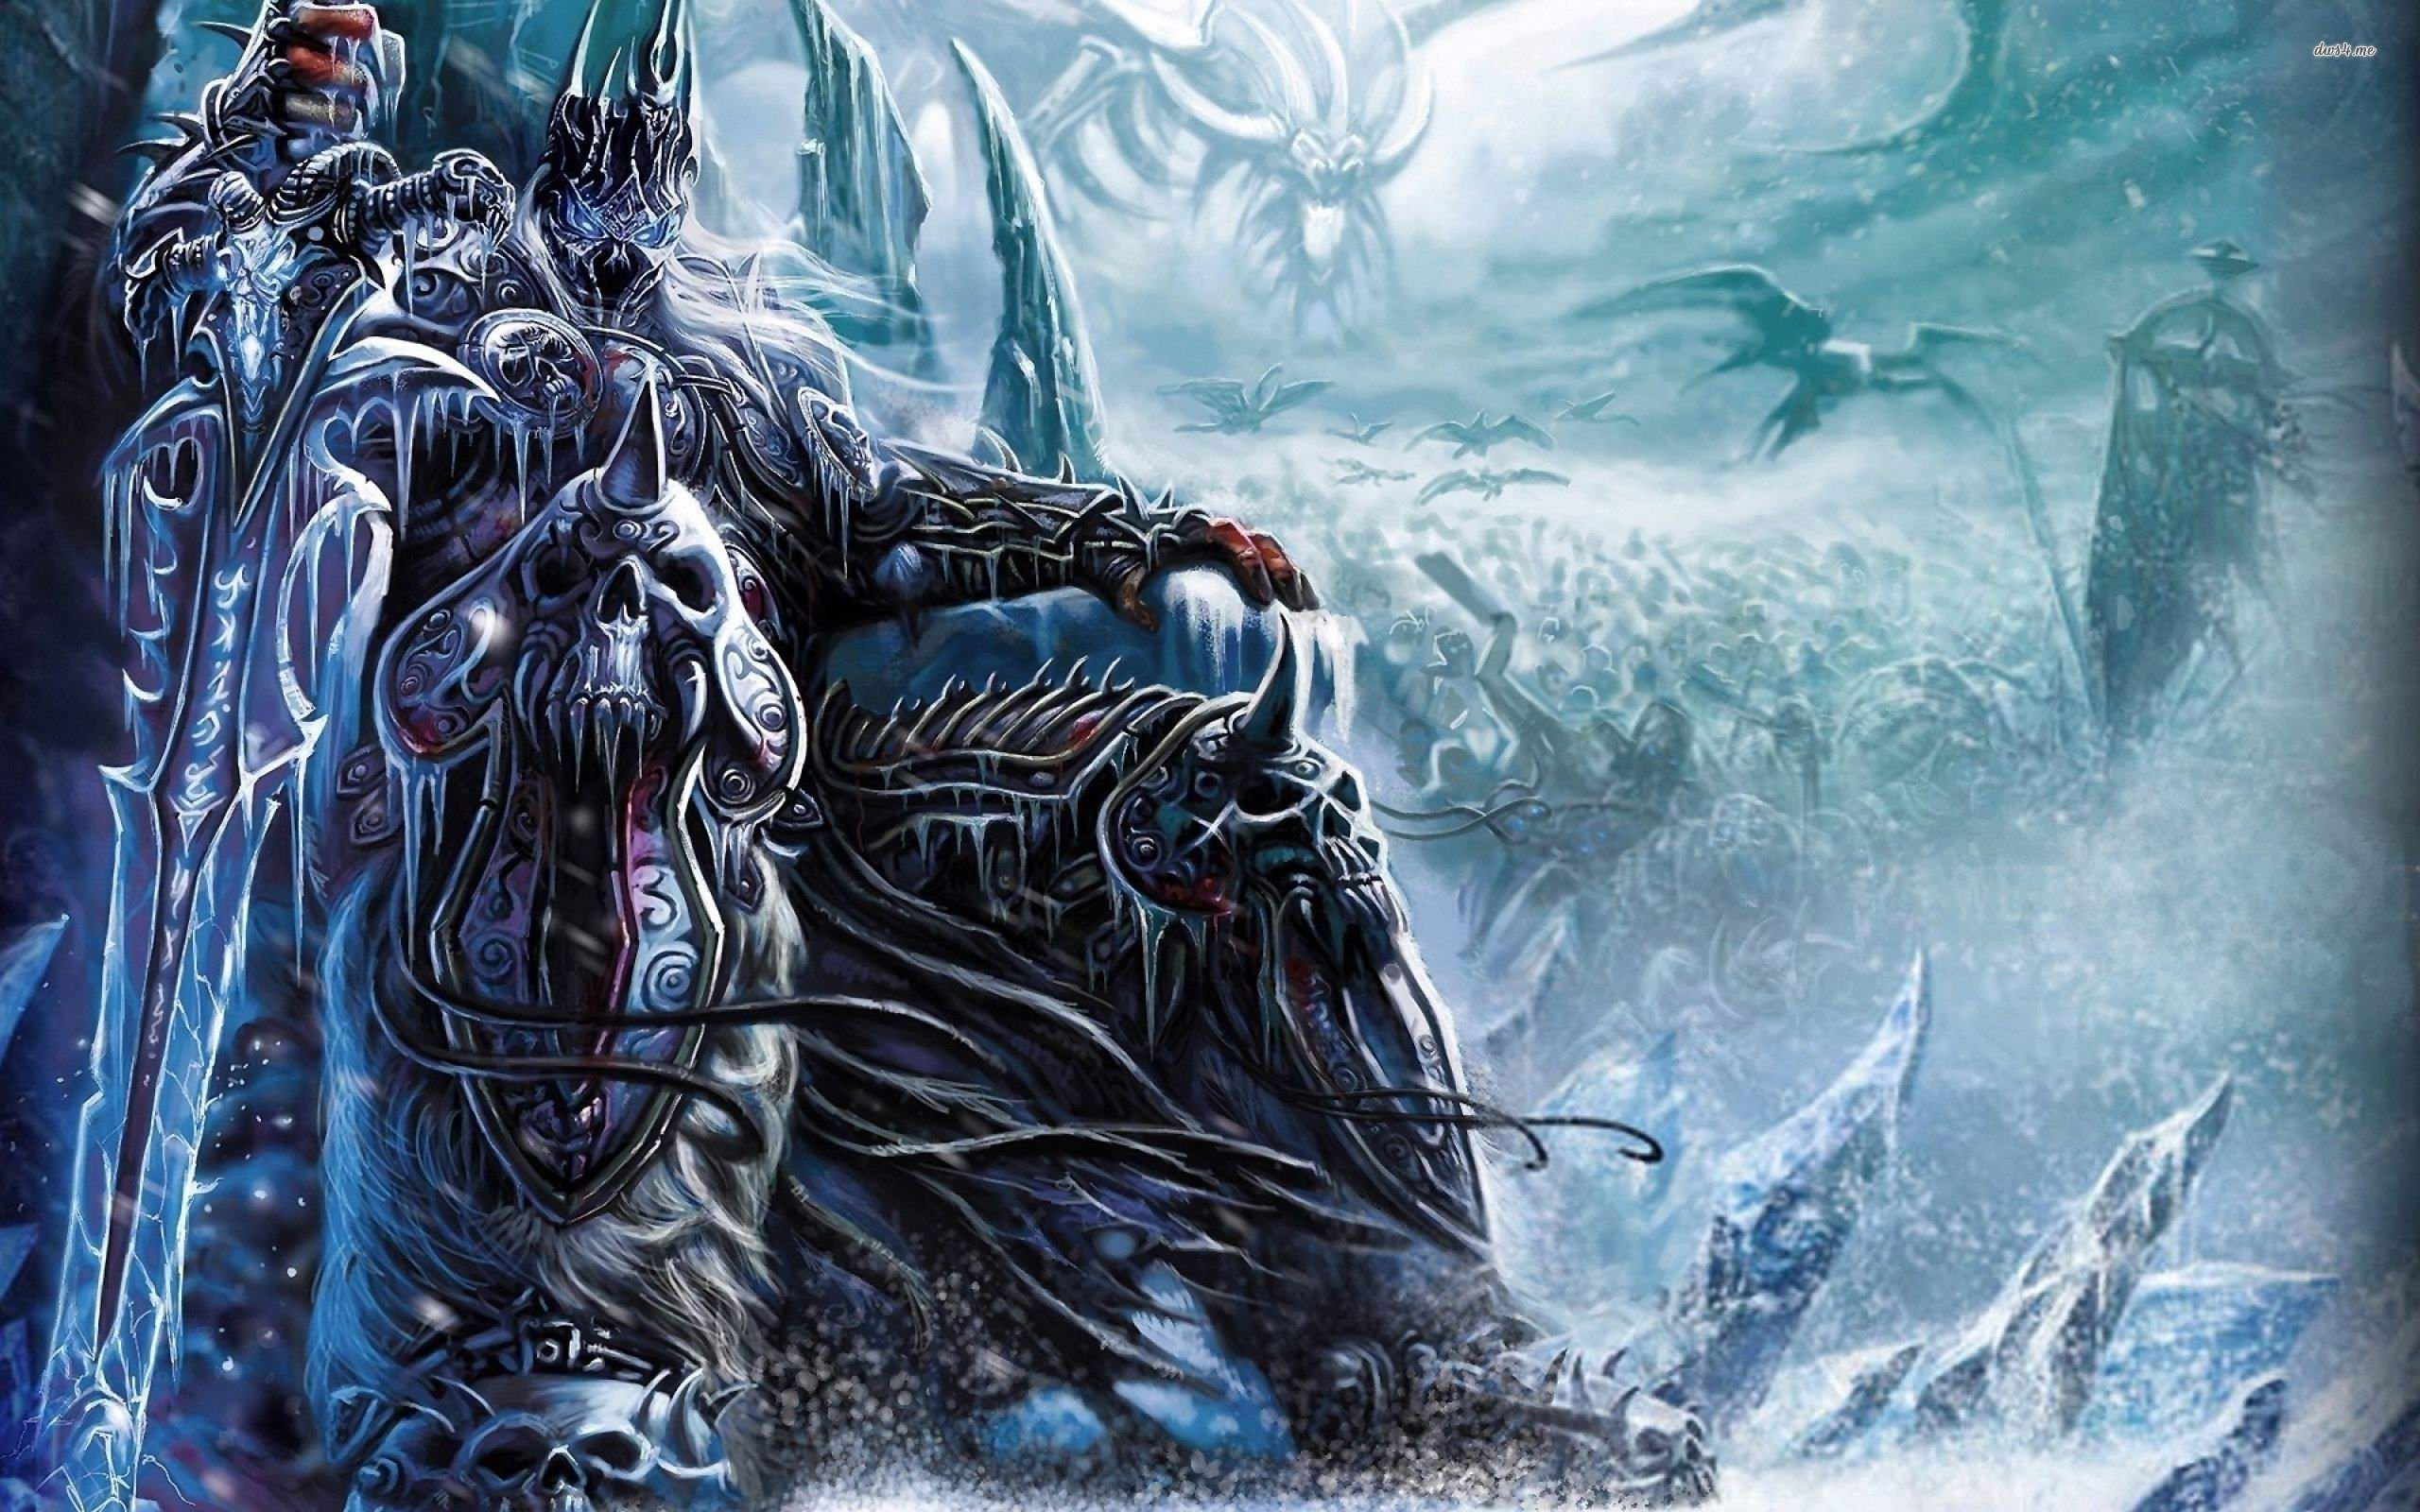 World Of Warcraft - Wrath Of The Lich King Wallpaper